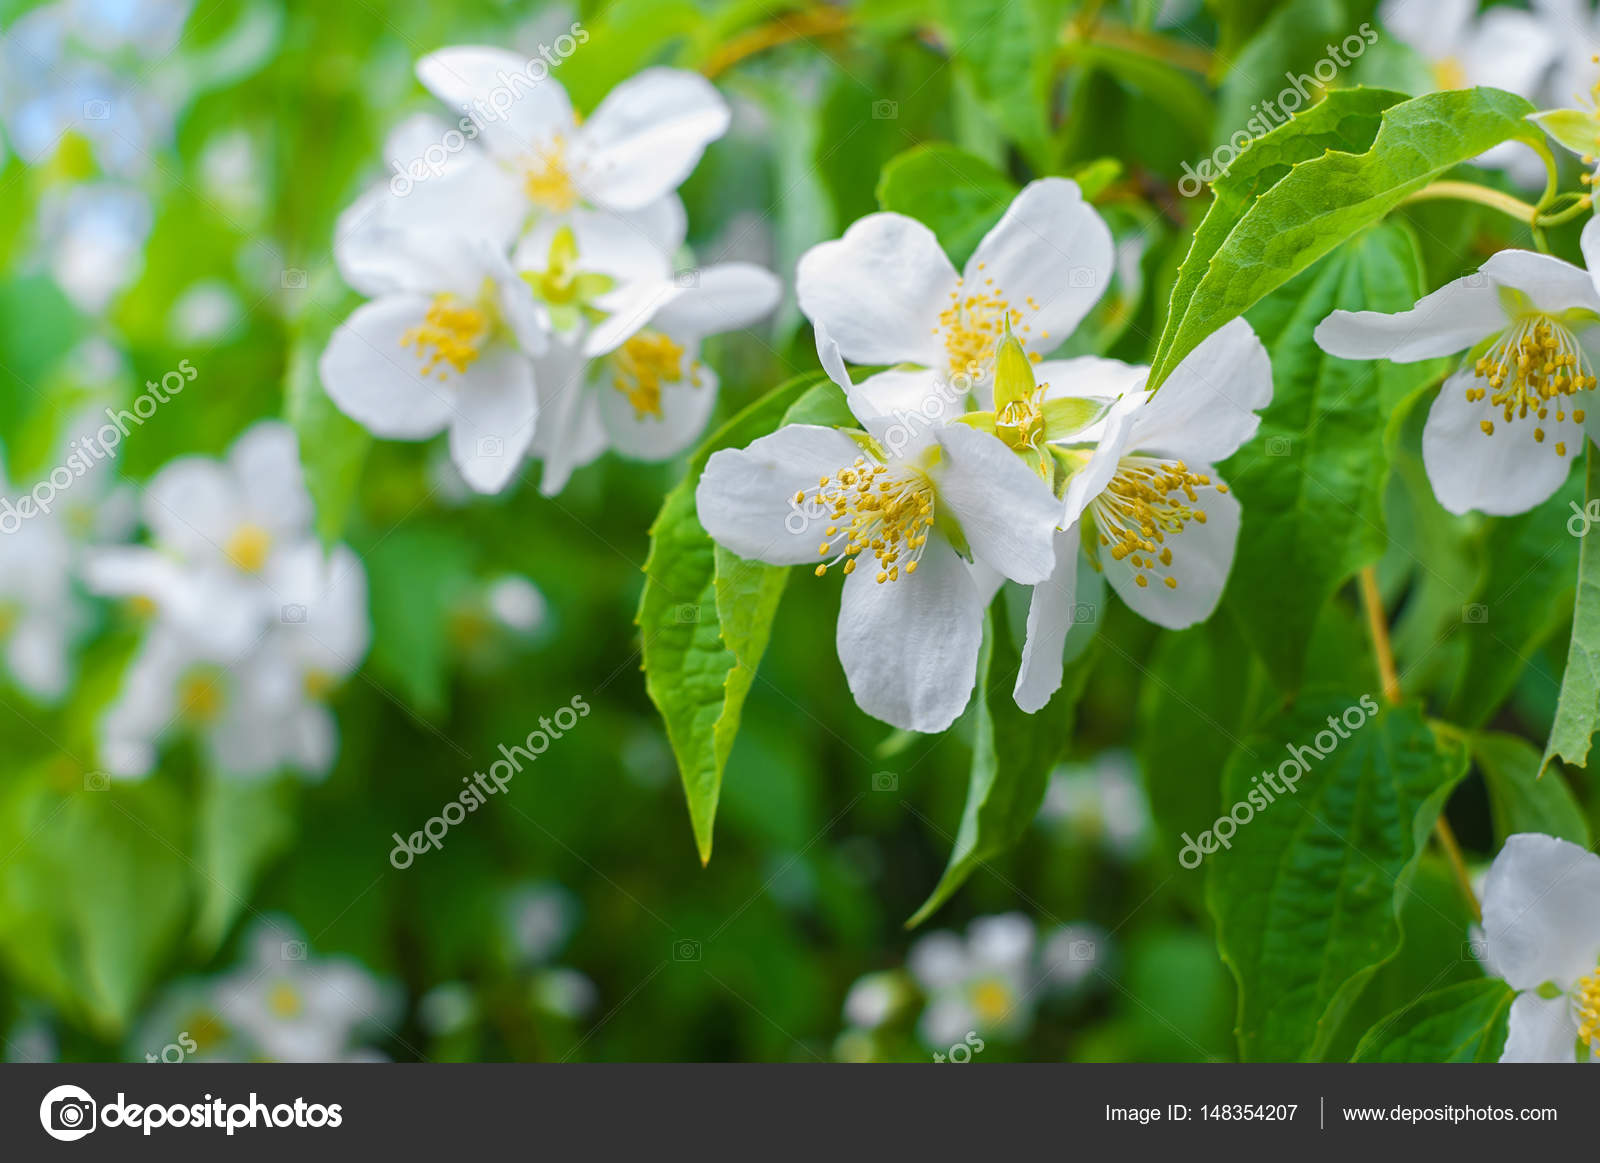 Close Up Photo Of Jasmine Flowers Blooming In Garden At Spring